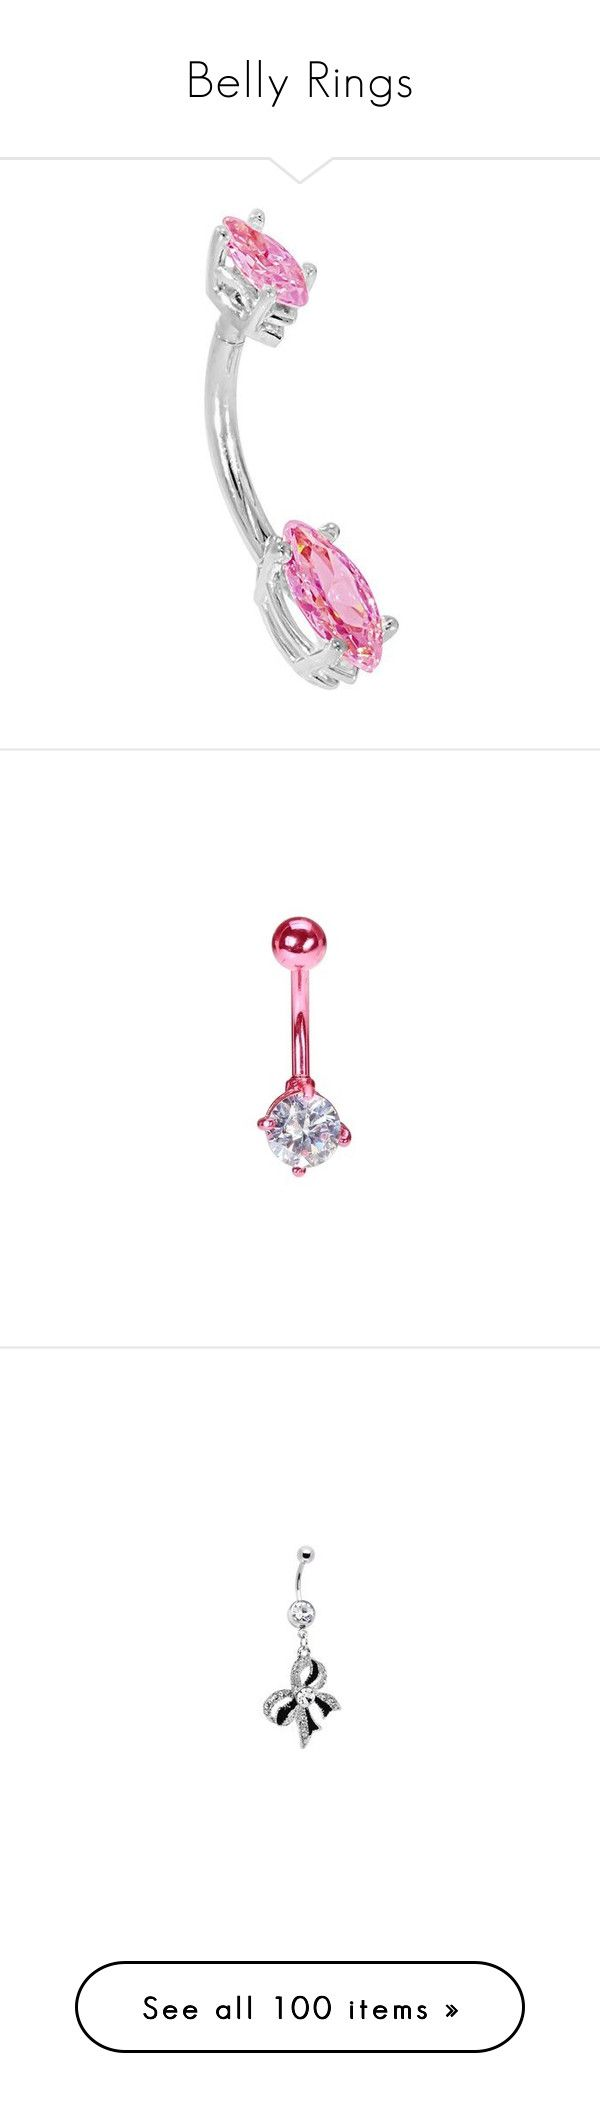 """""""Belly Rings"""" by ohgoditsyou-k ❤ liked on Polyvore featuring jewelry, handcrafted jewelry, body jewellery, white gold jewellery, petite jewelry, white gold body jewelry, belly rings, clear jewelry, belly button rings jewelry and neon pink jewelry"""